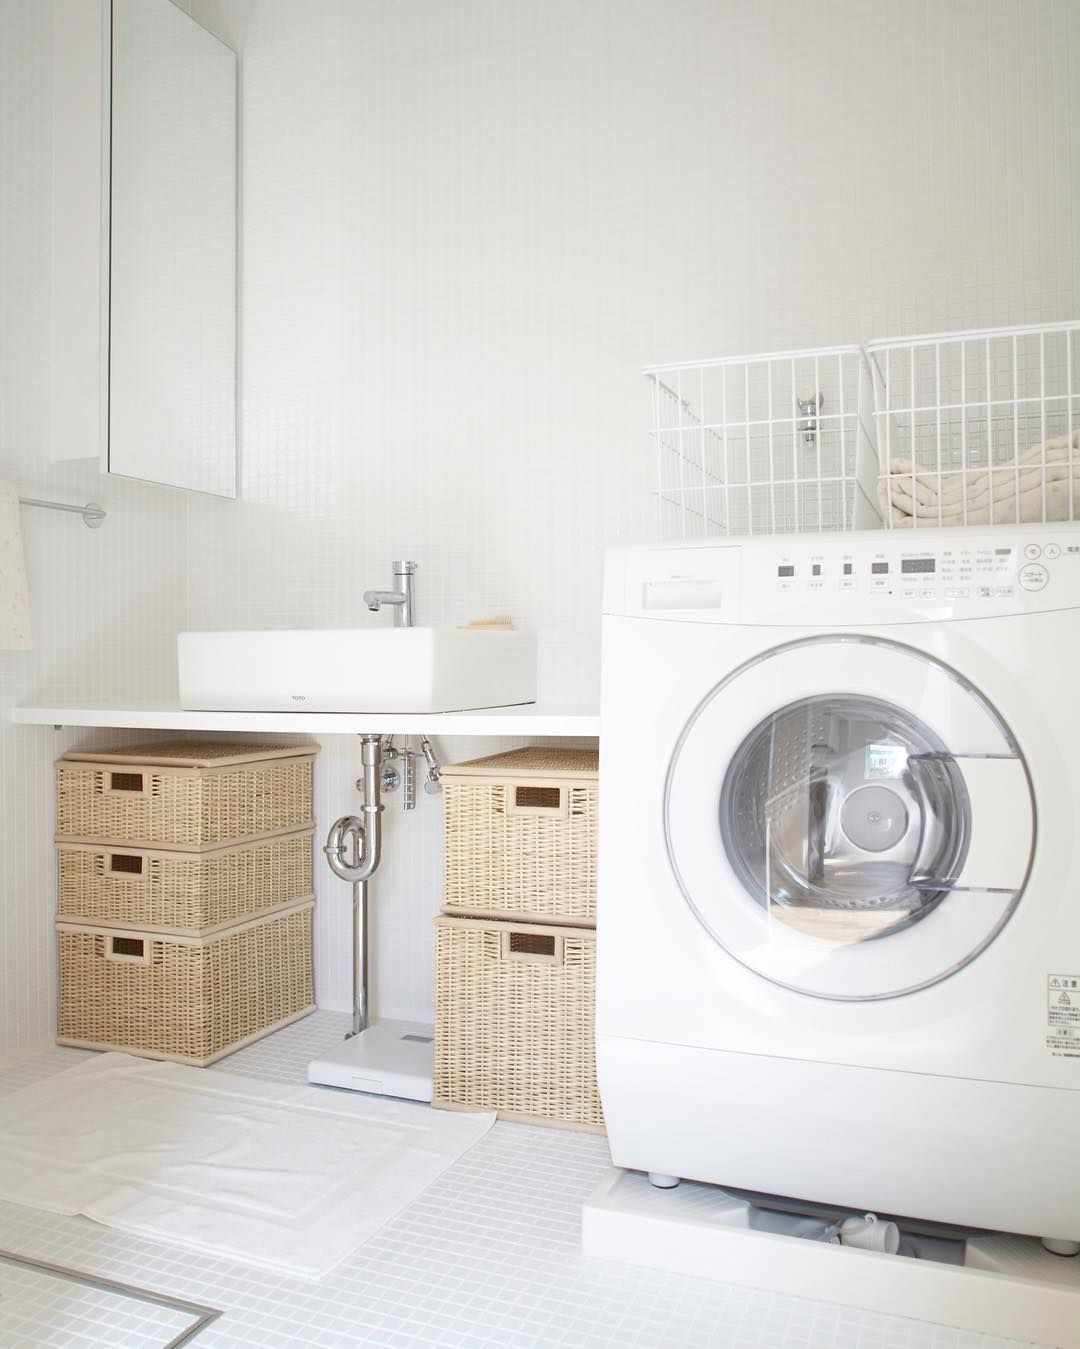 Pin By Benjamin Weidman On Home In 2020 Home Appliances Washer And Dryer Home